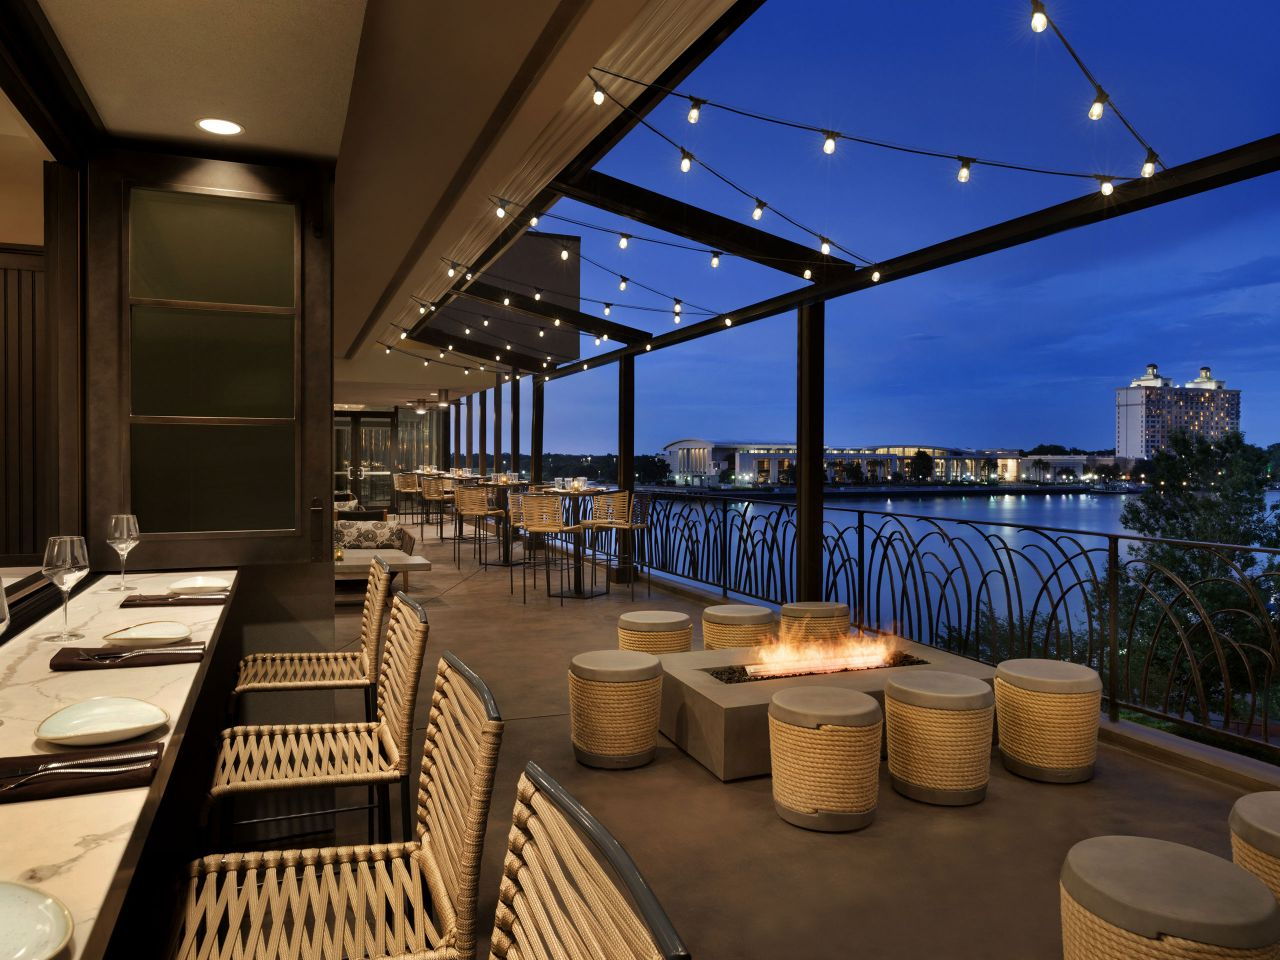 Restaurant tables and chairs on riverfront patio